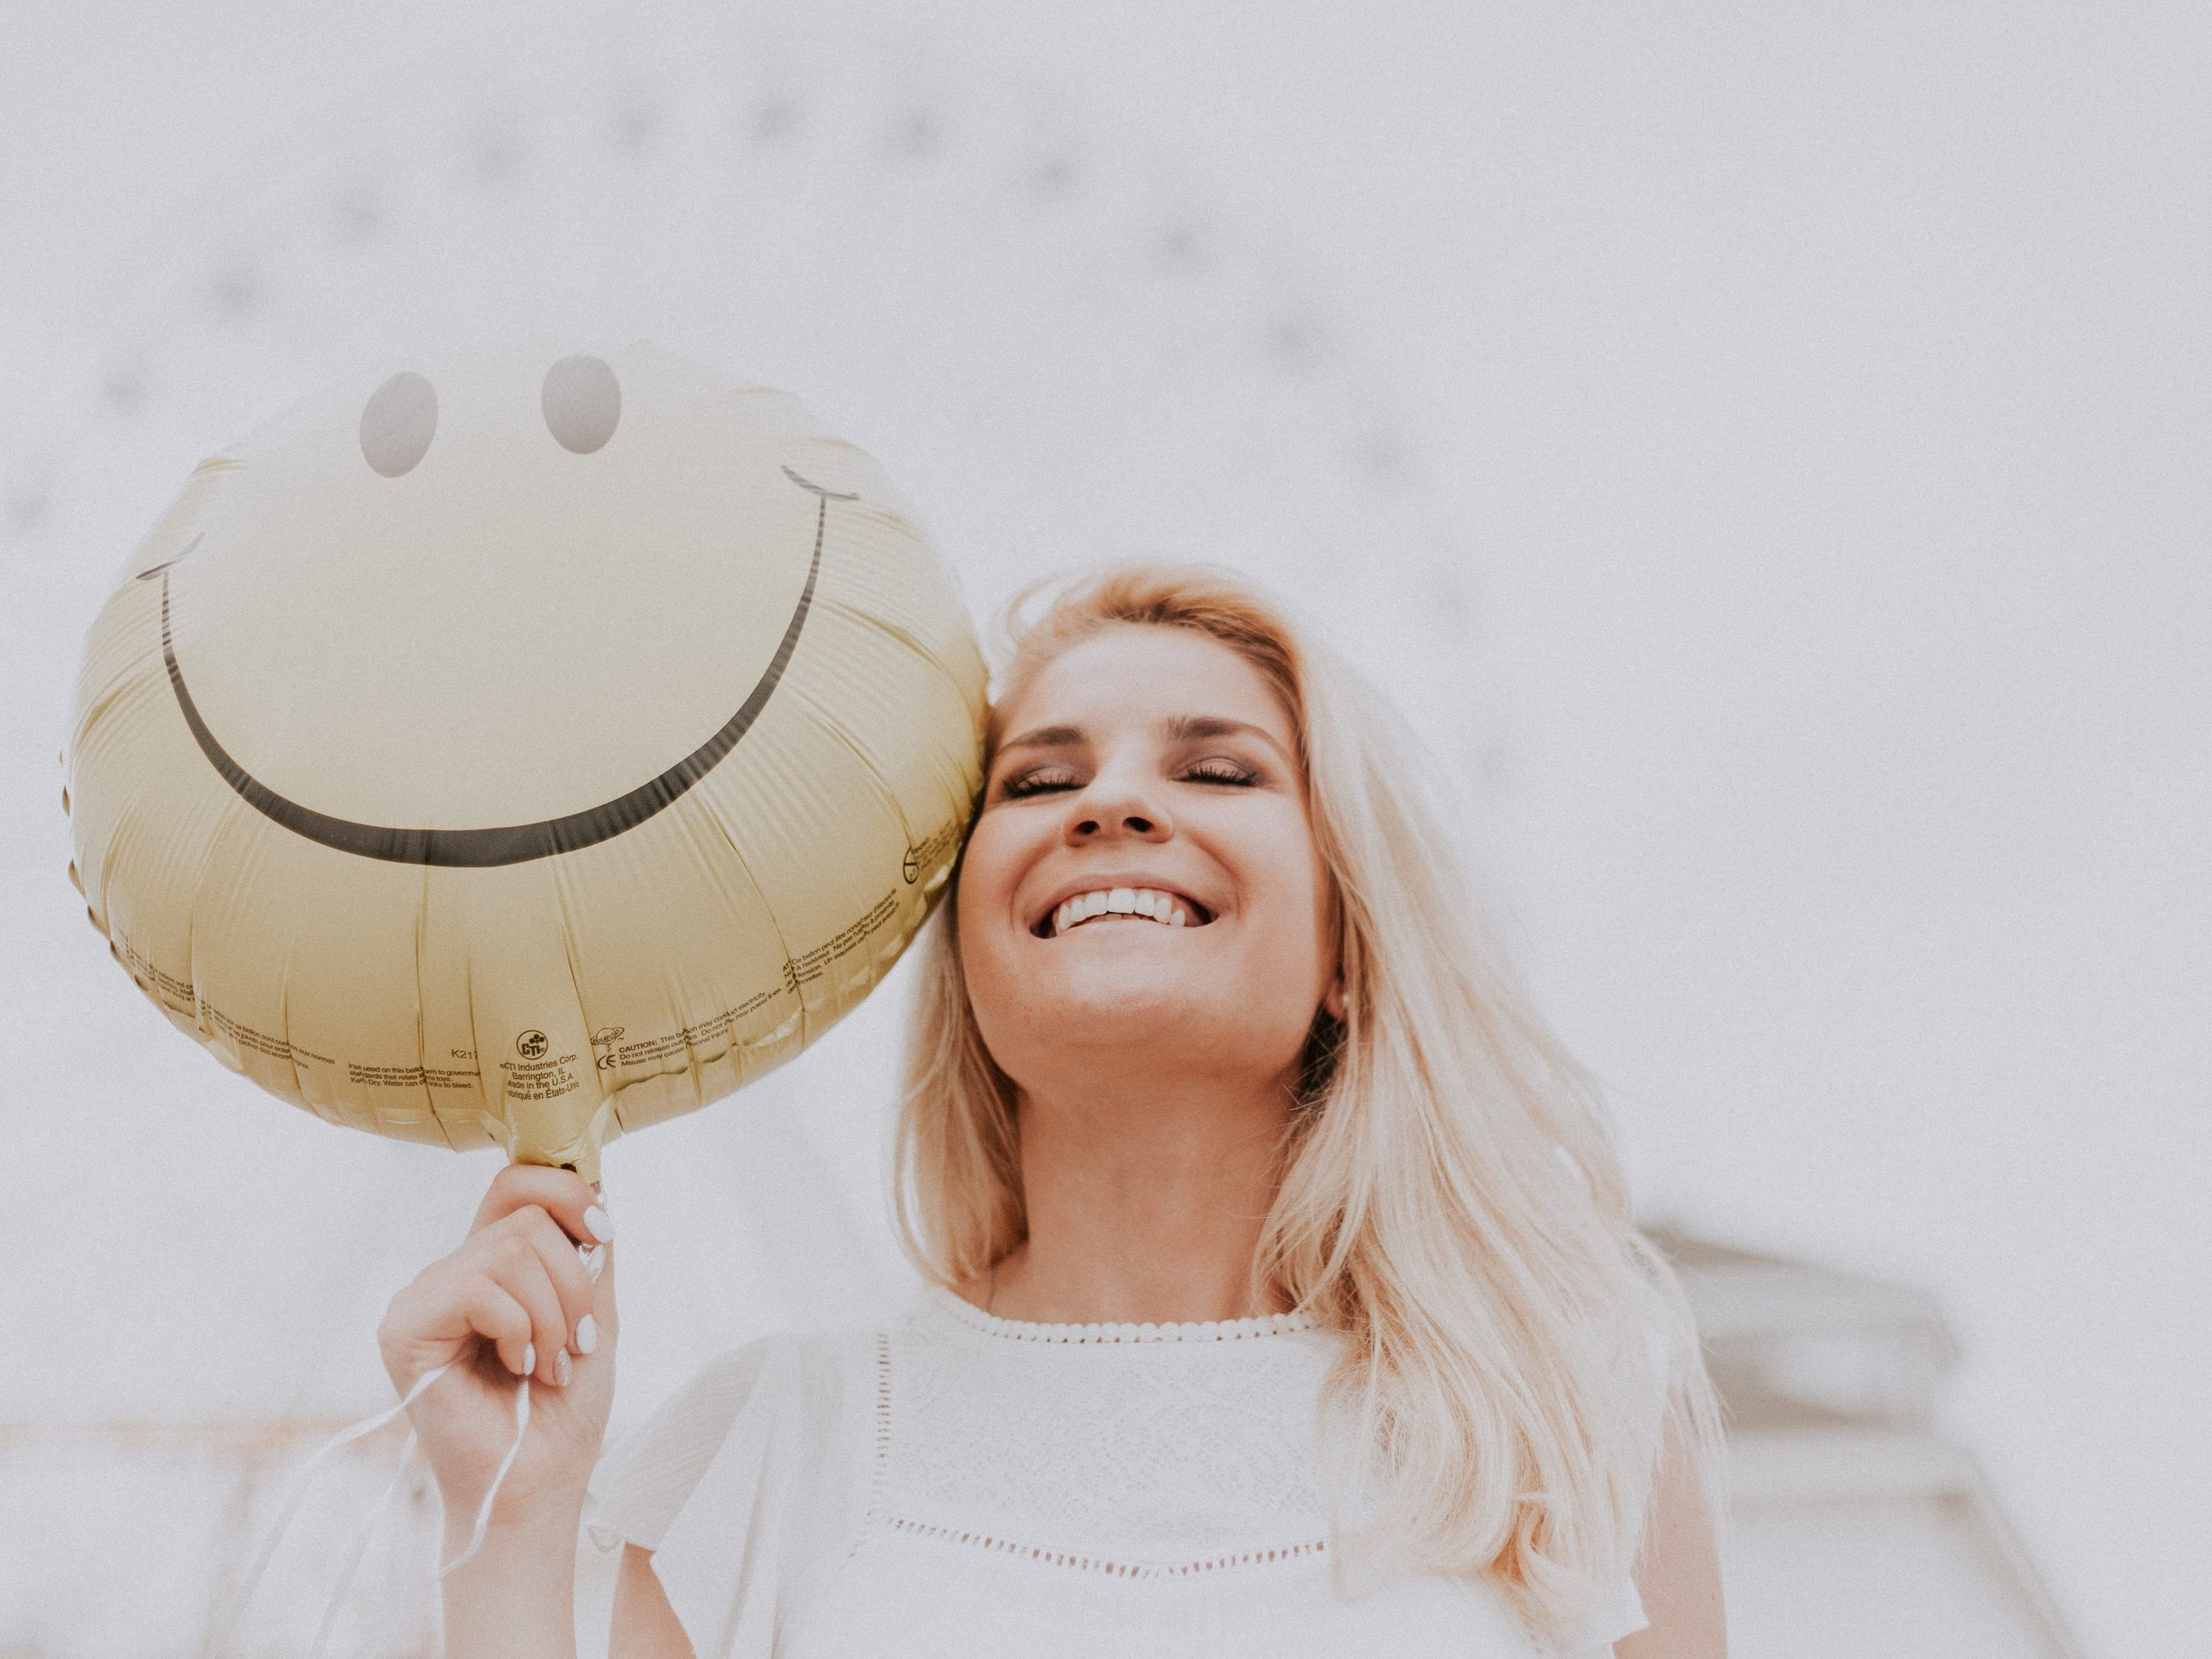 9 Important Things to Let Go to Be Happier